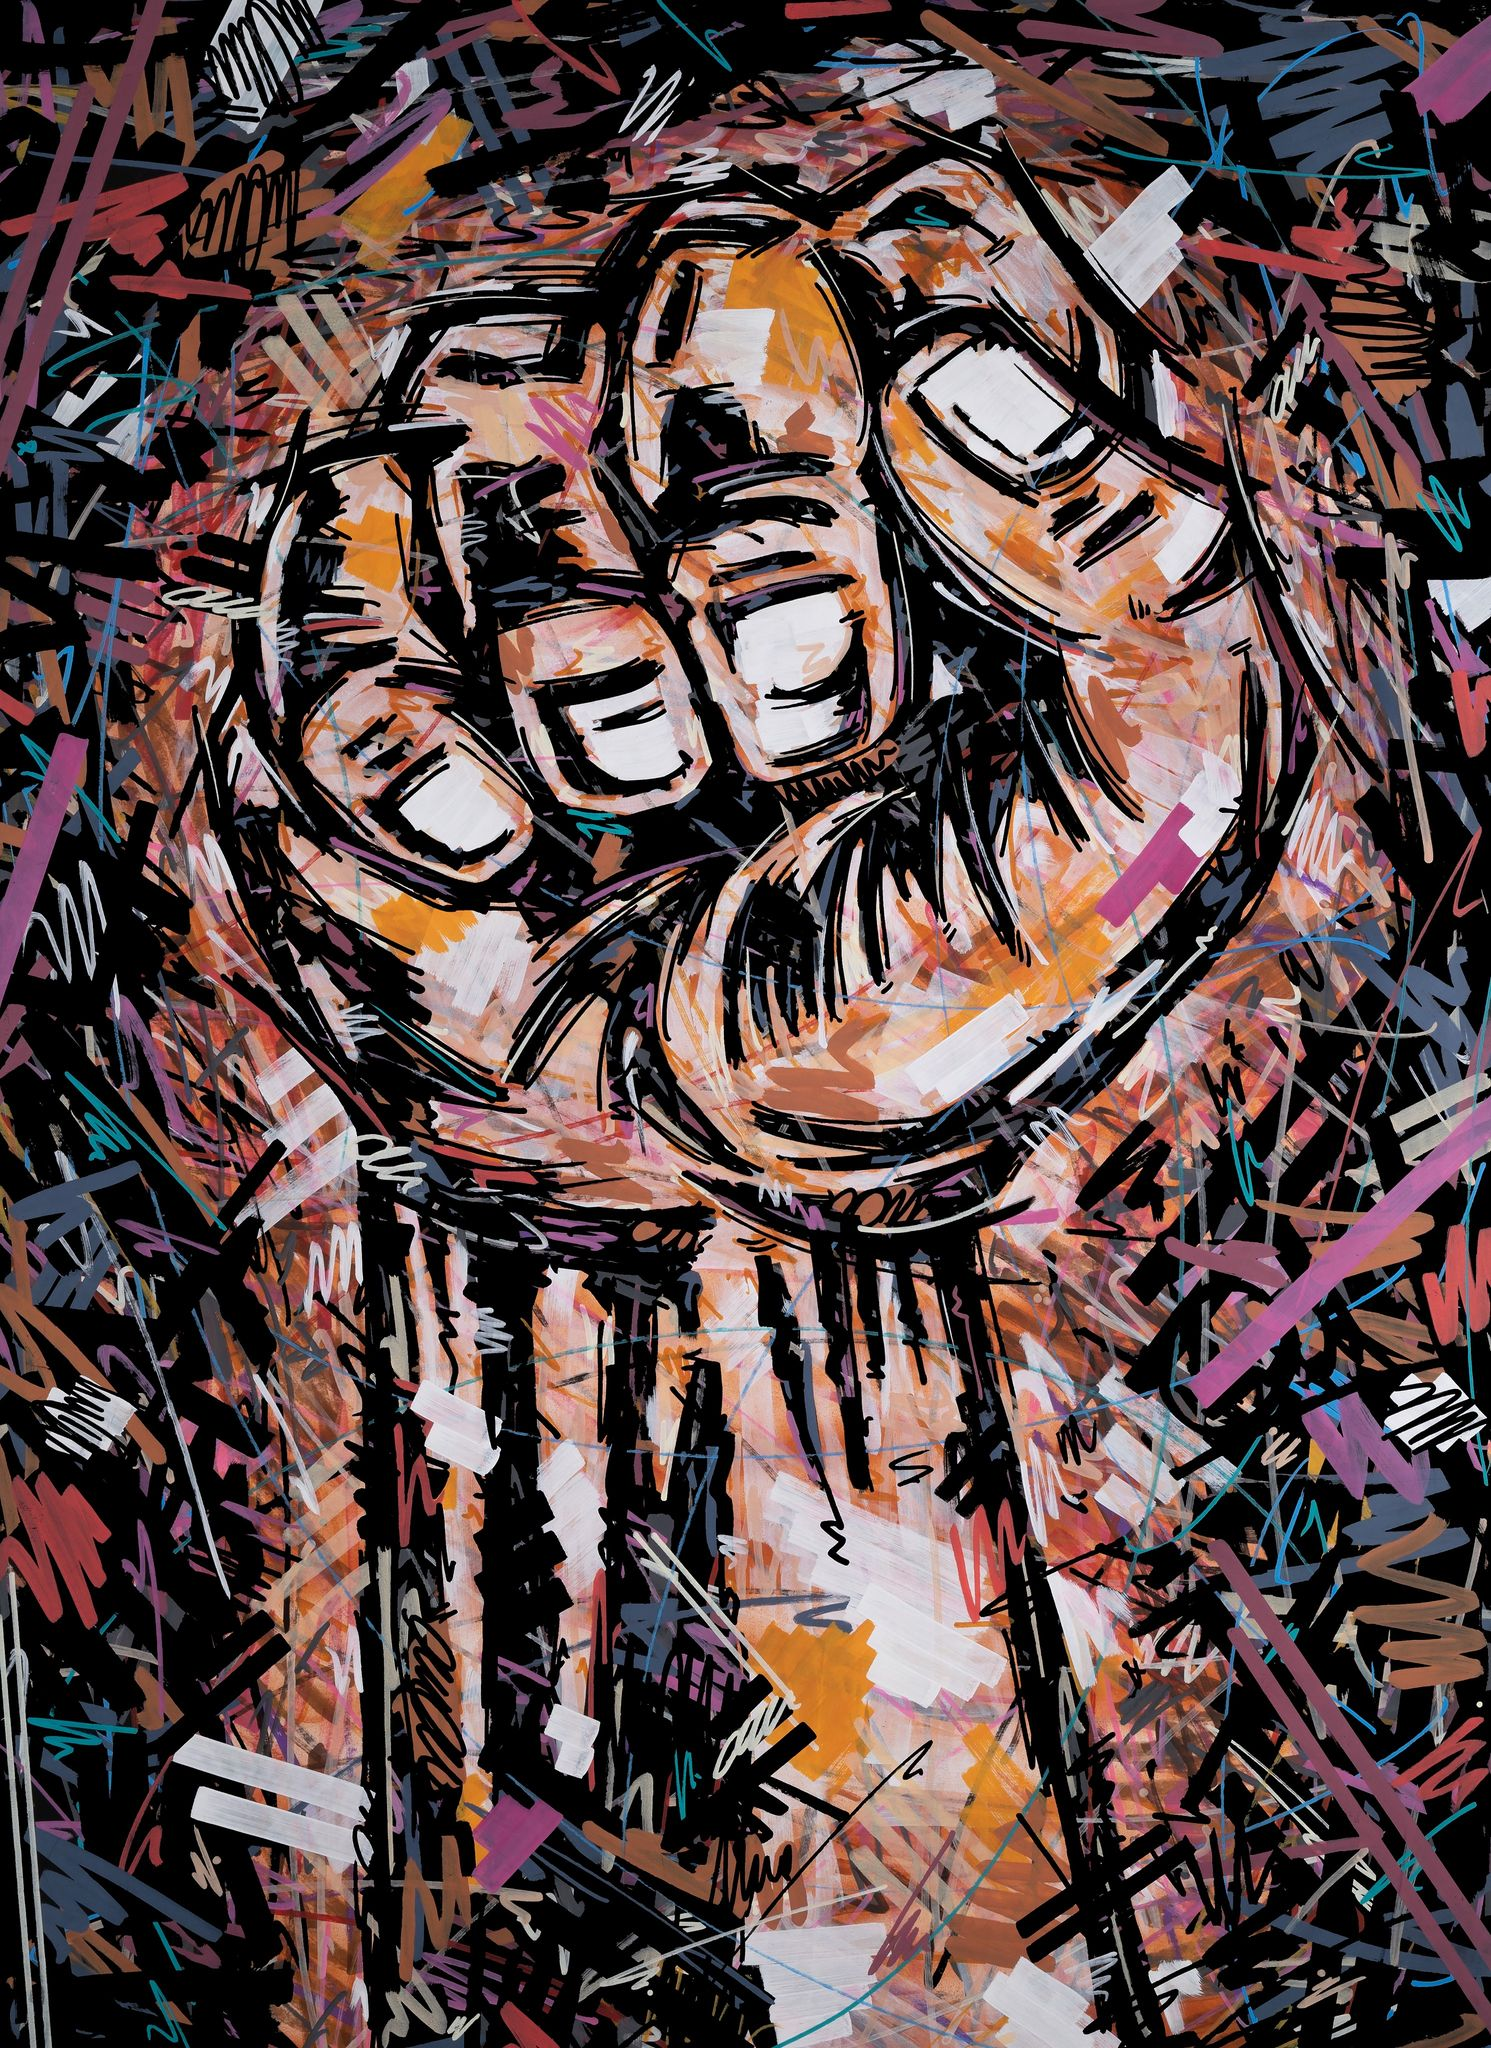 Power to the people, fight the power, public enemy , artisbullshit, ivan beslic , fist , blm